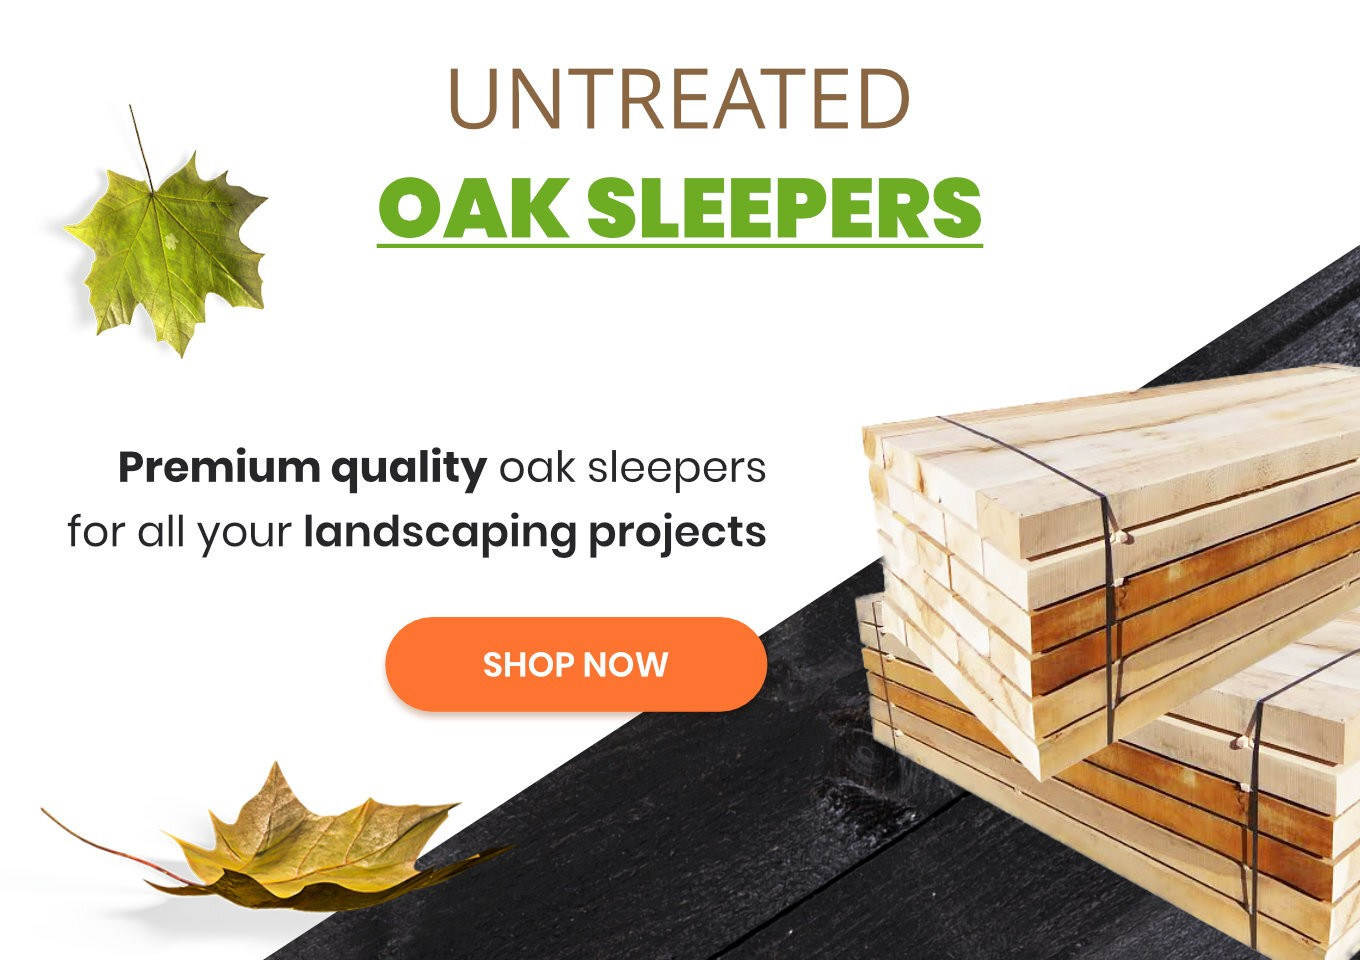 Untreated Oak Sleepers